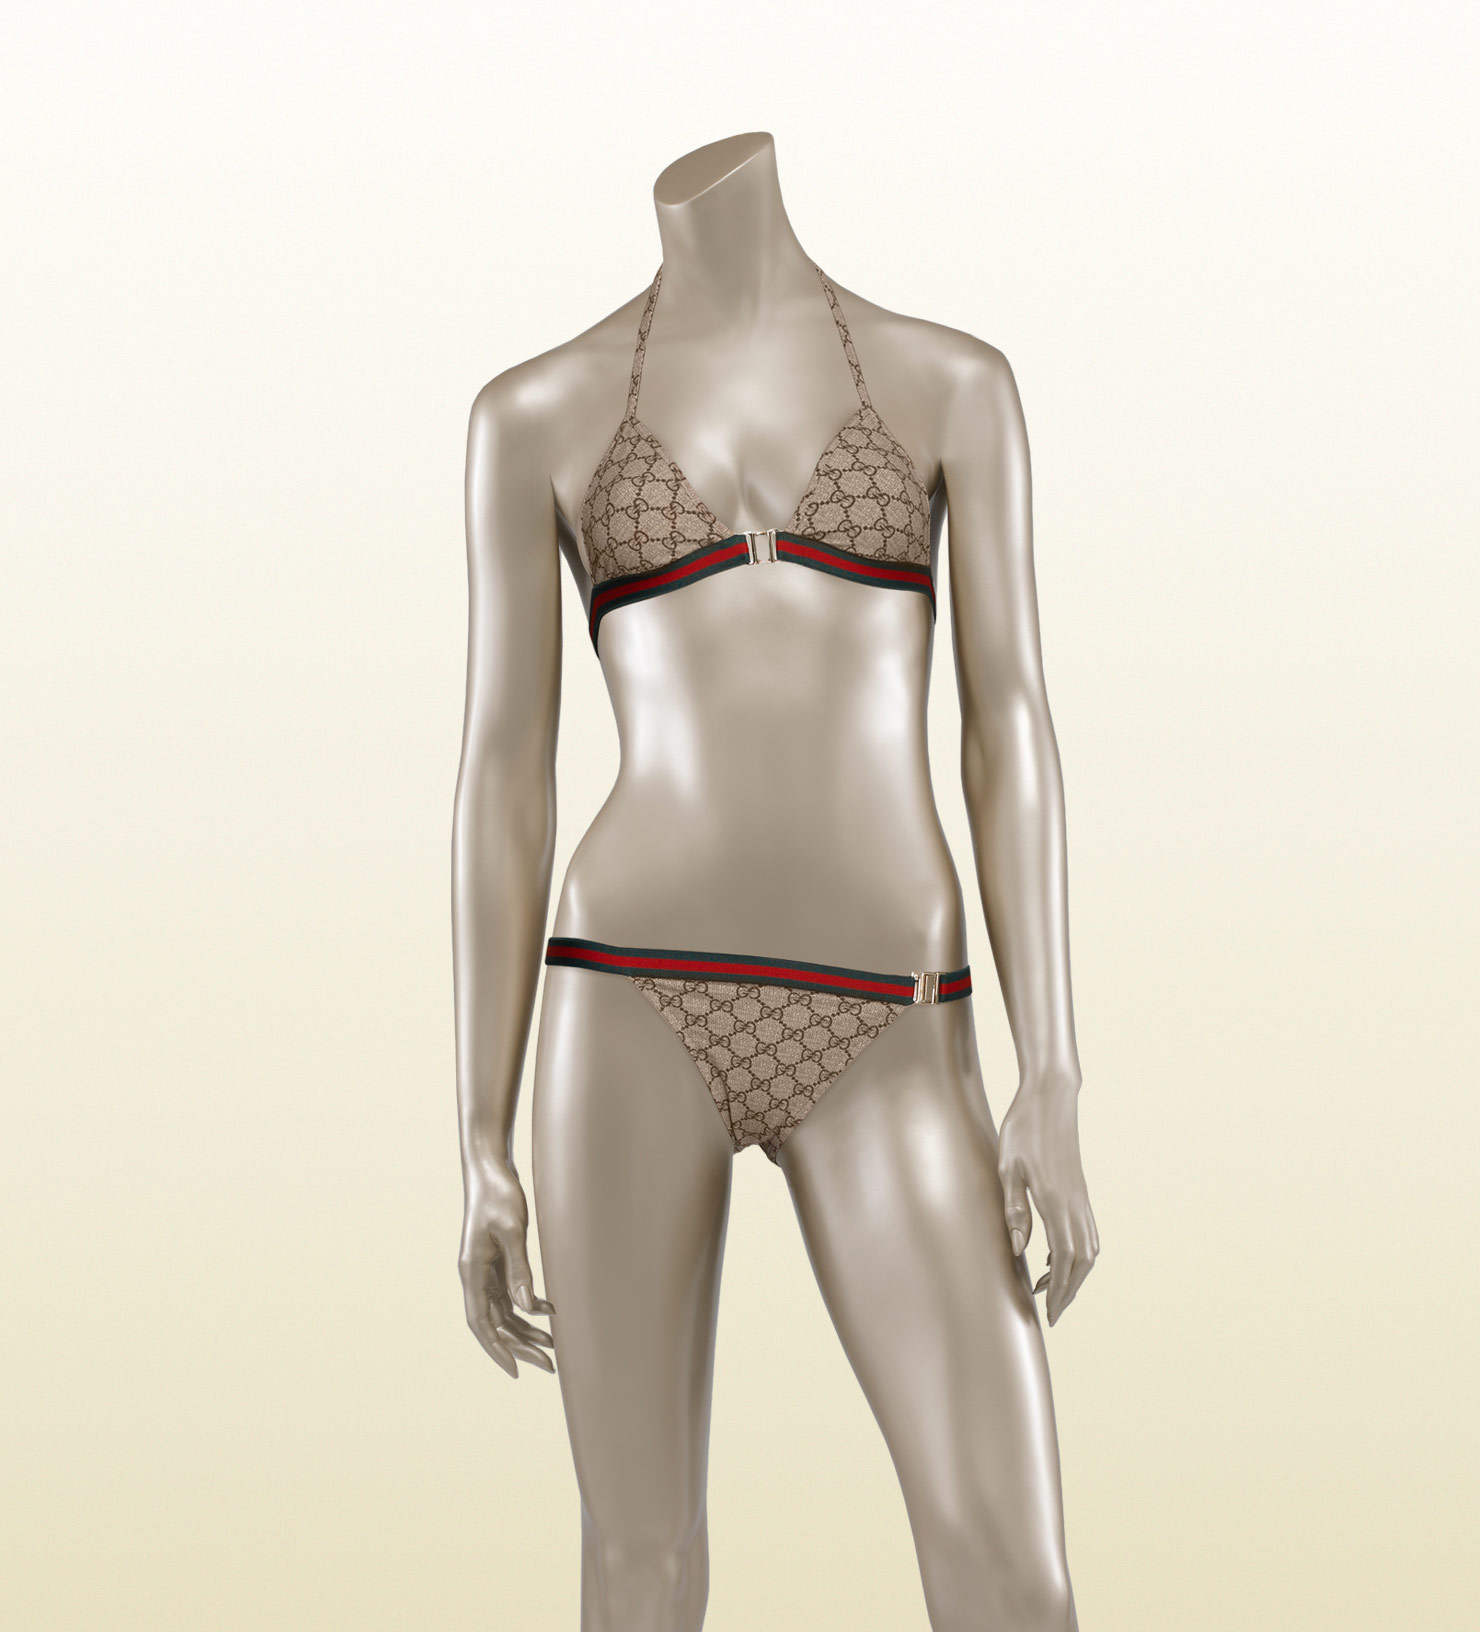 ca7b0b8d1ac5c Lyst - Gucci Triangle Top Bikini with Signature Web in Natural